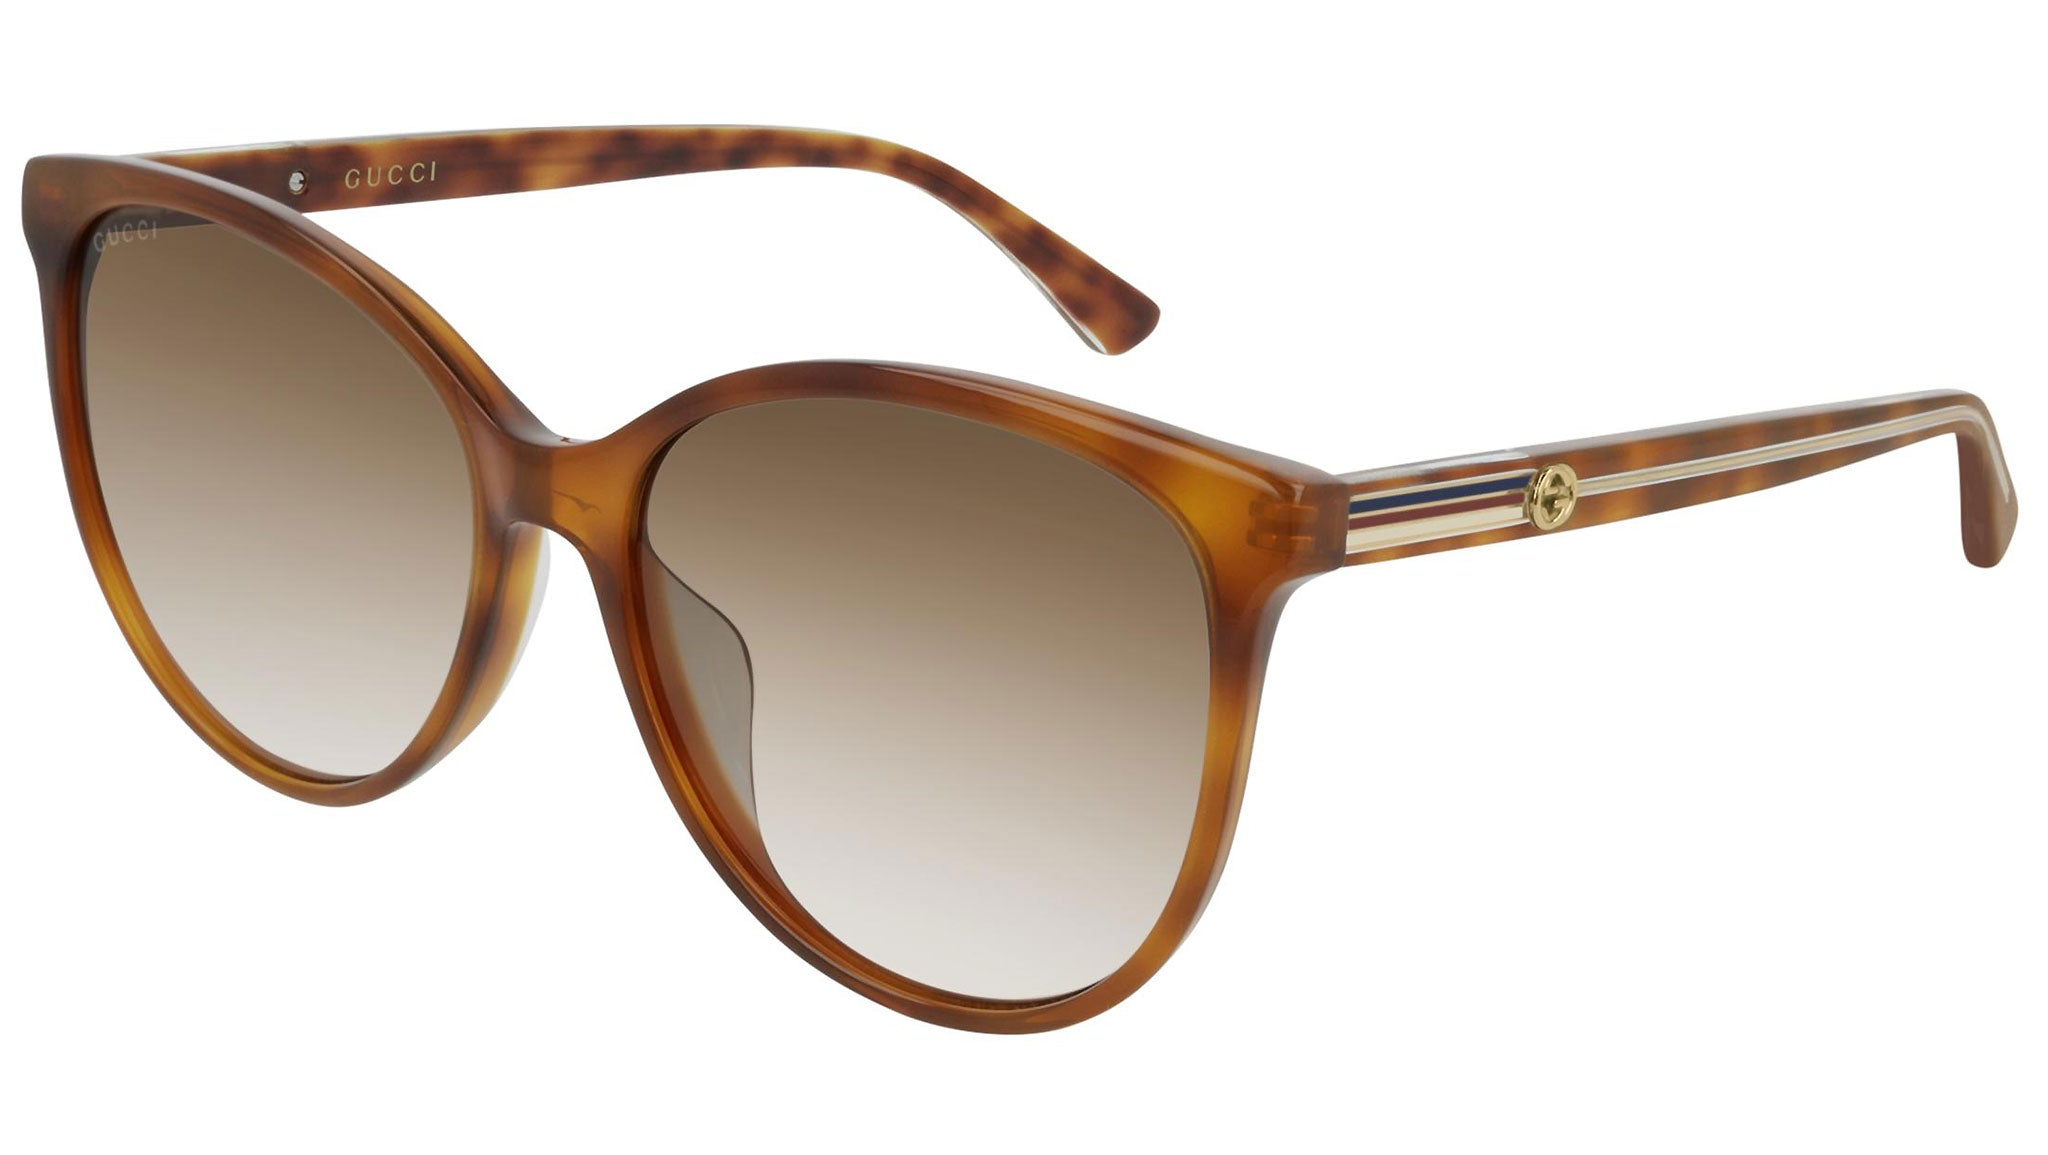 GG0377SK light havana and brown